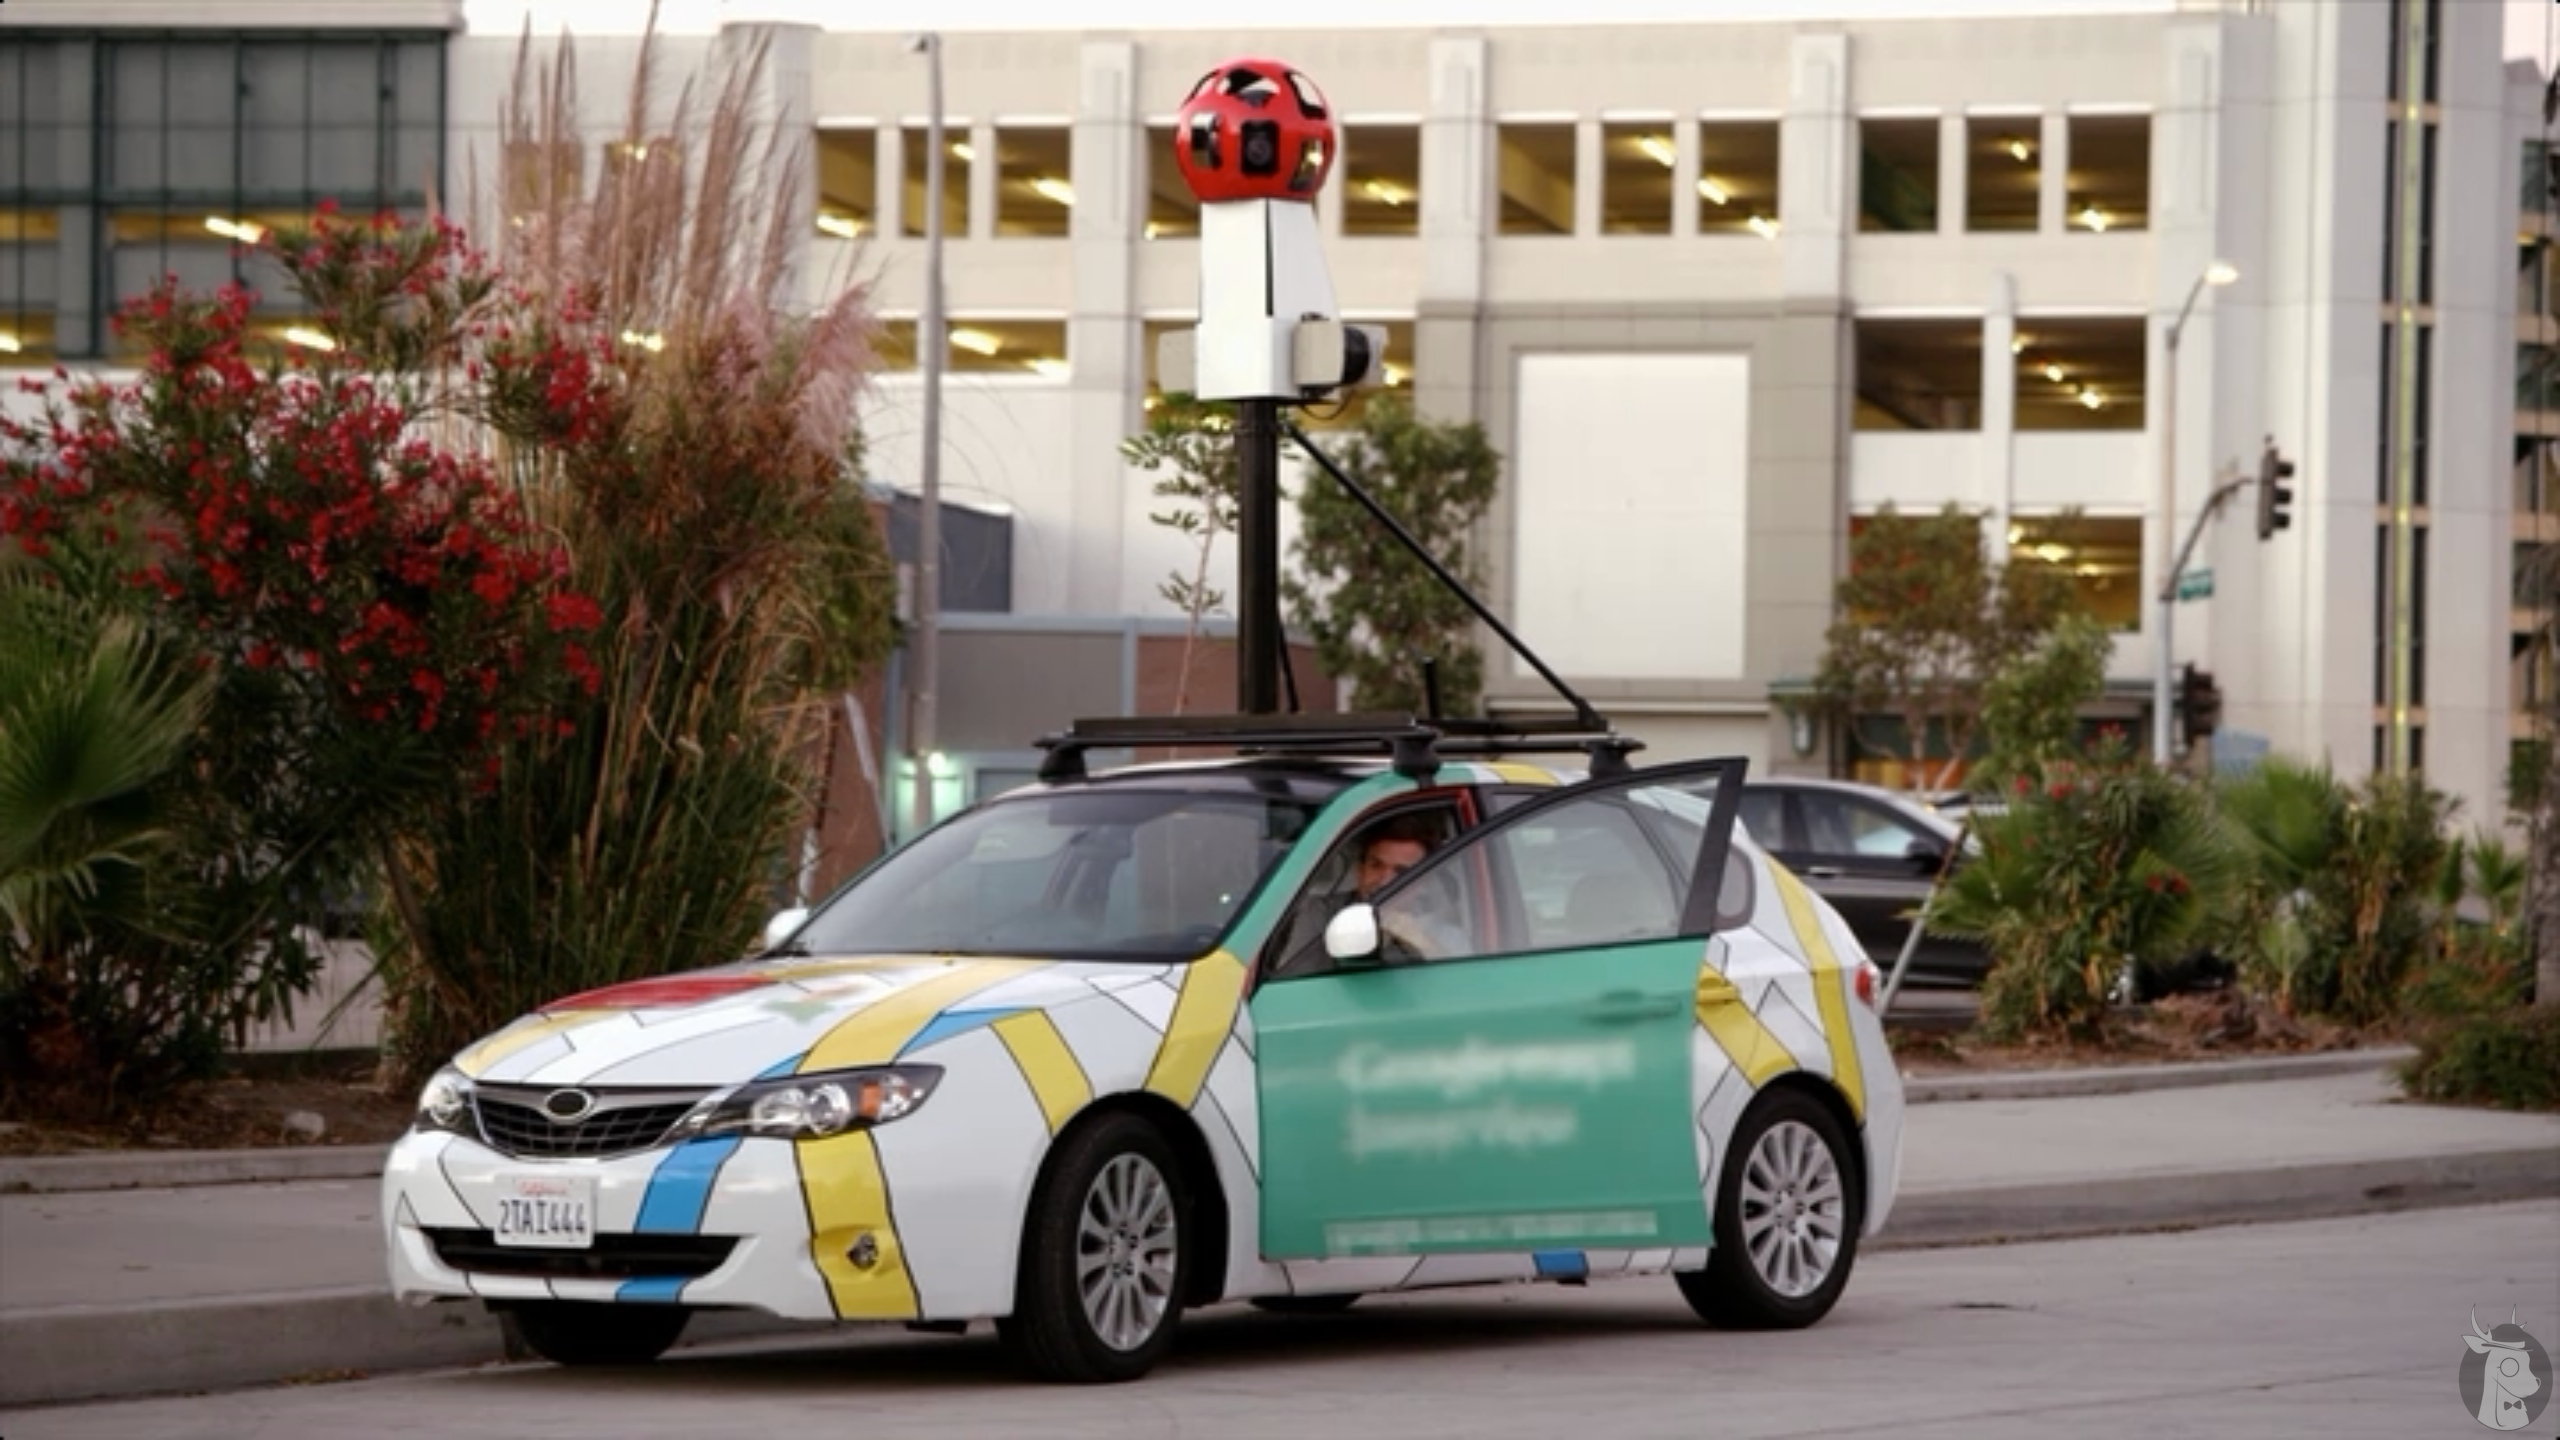 Google Maps Street View car on Arrested Development